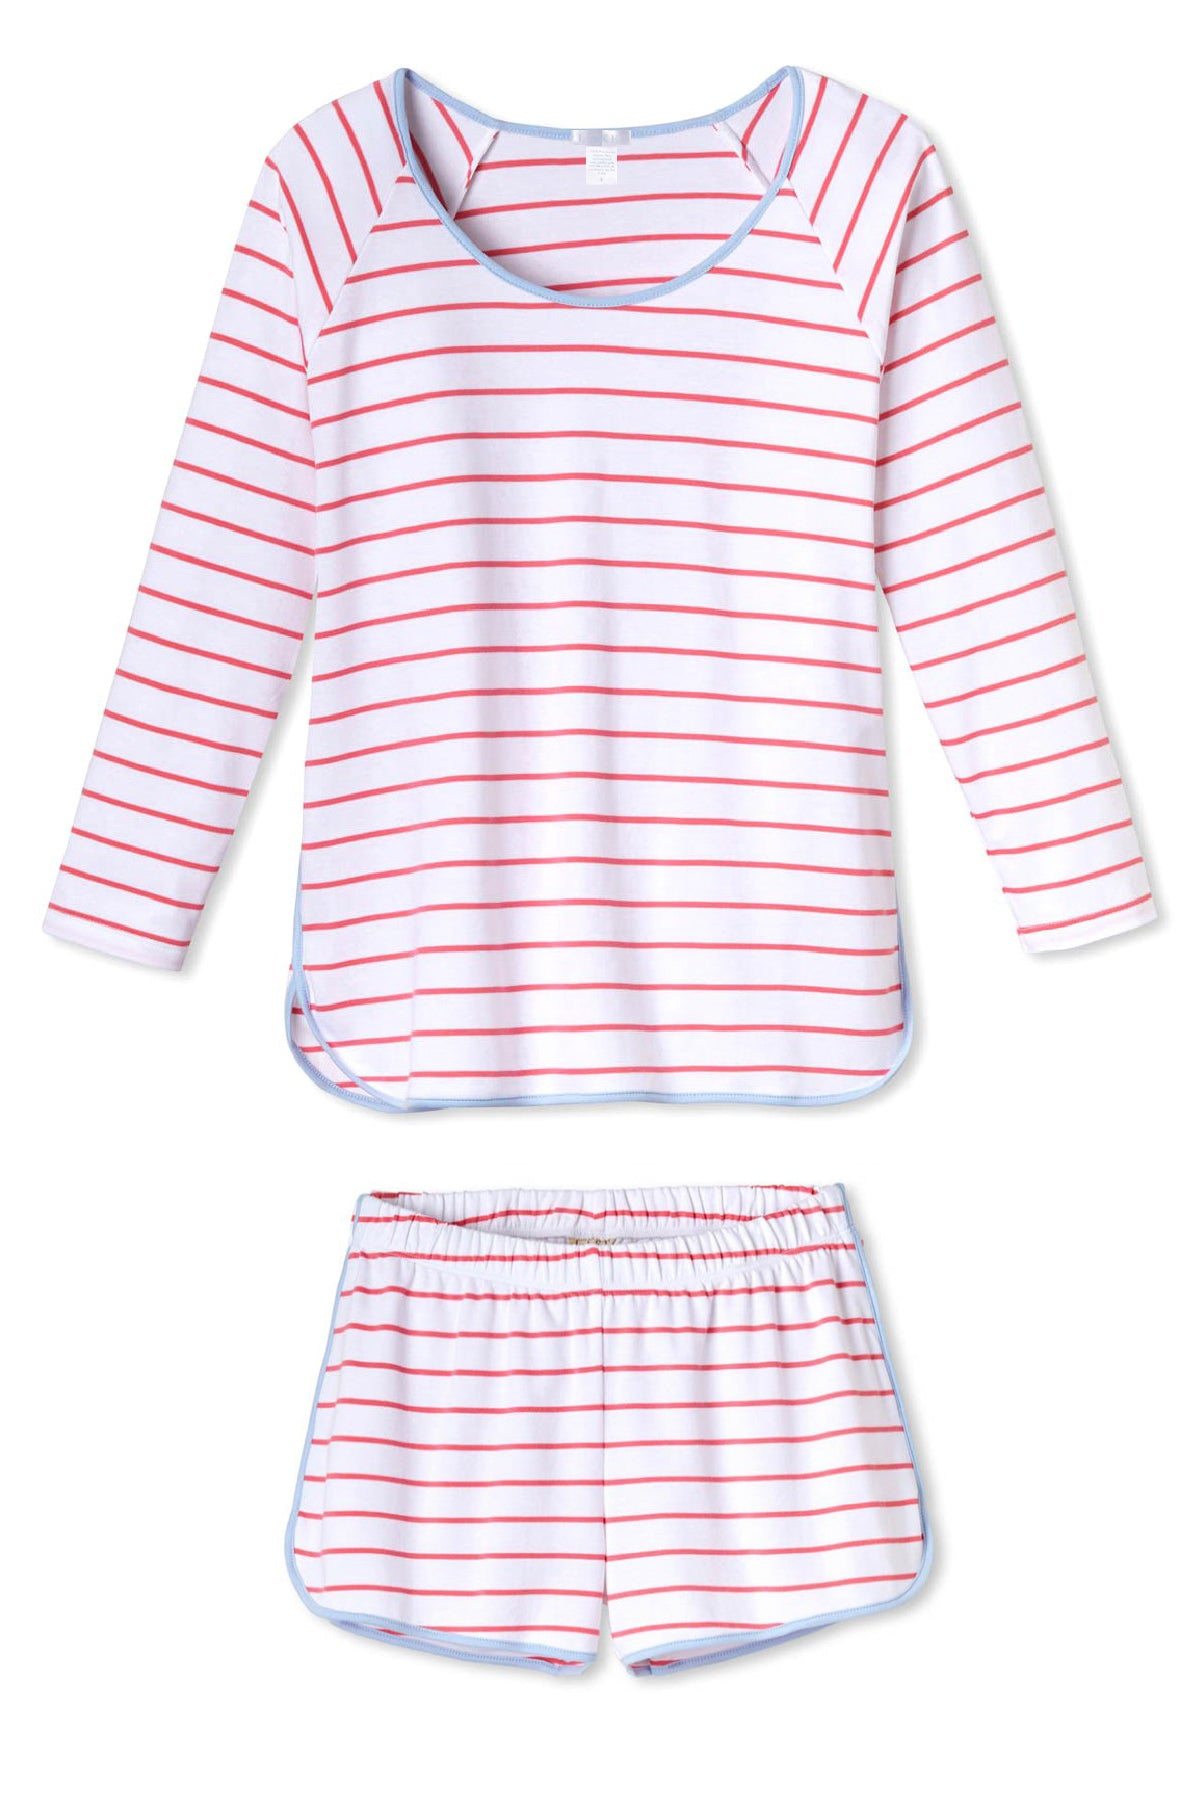 Pima Long-Short Set in Sorbet